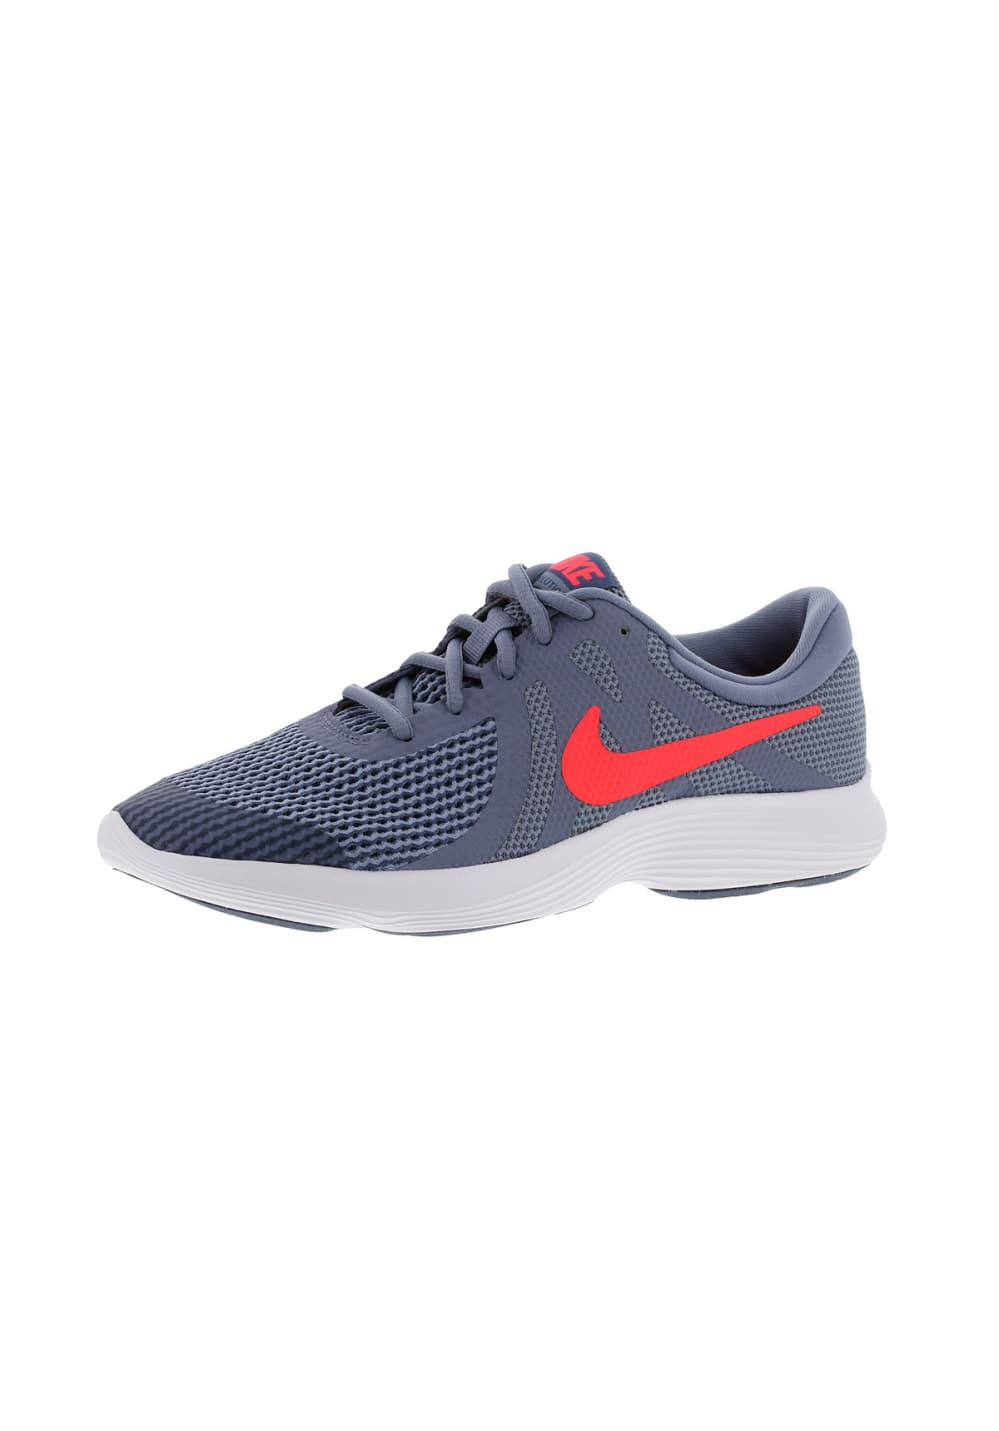 plus récent 64a2b 26caa Nike Revolution 4 (gs) - Running shoes for Boys - Grey